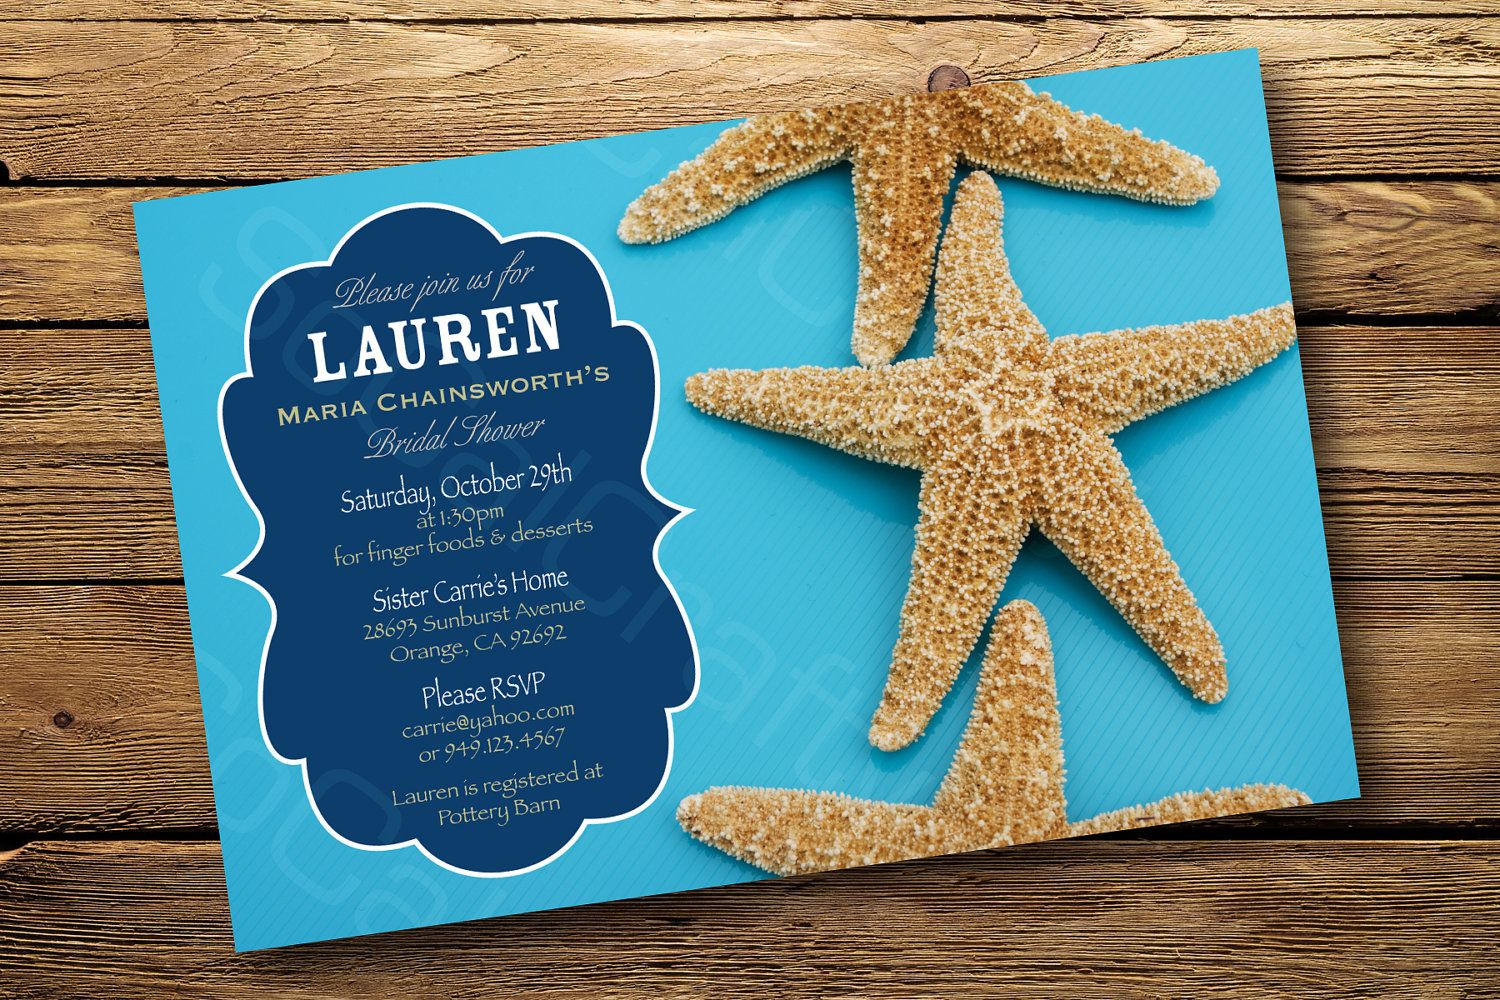 17 Best images about Beach party invites on Pinterest | Starfish ...